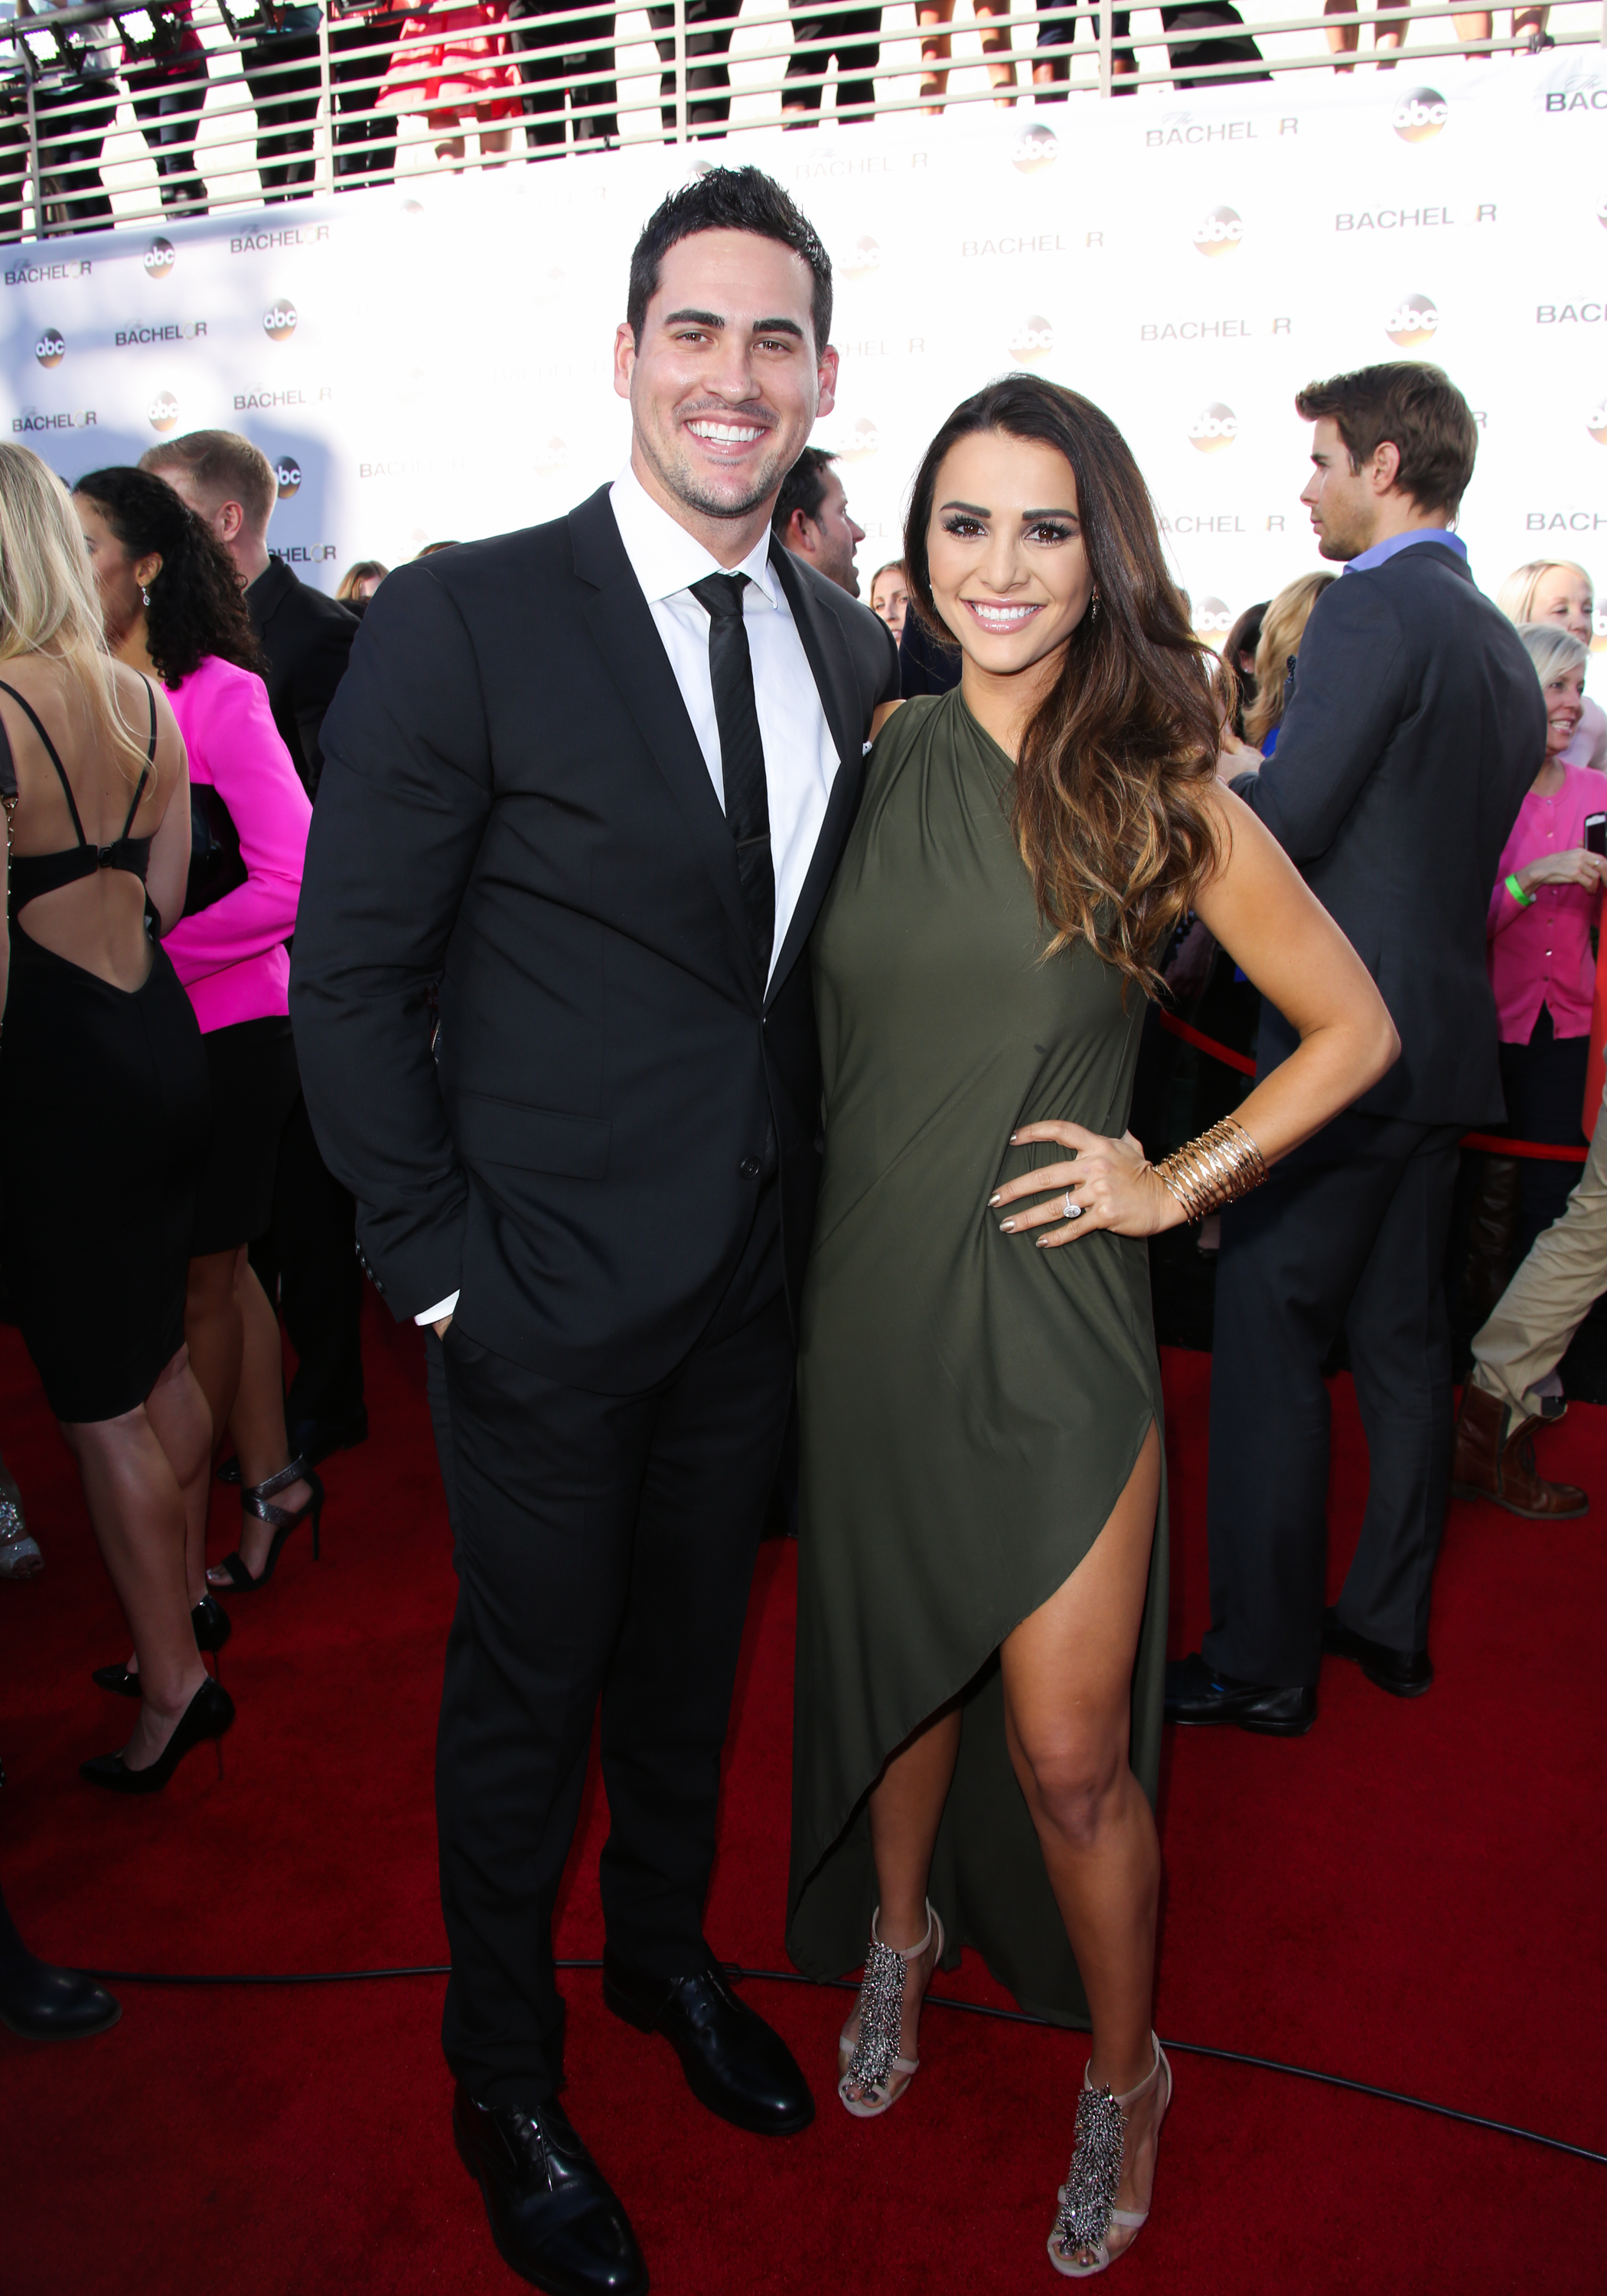 From Left: Reality TV Personalities Josh Murray and Andi Dorfman attend ABC's  The Bachelor  season 19 premiere on Jan. 5, 2015 in Hollywood.